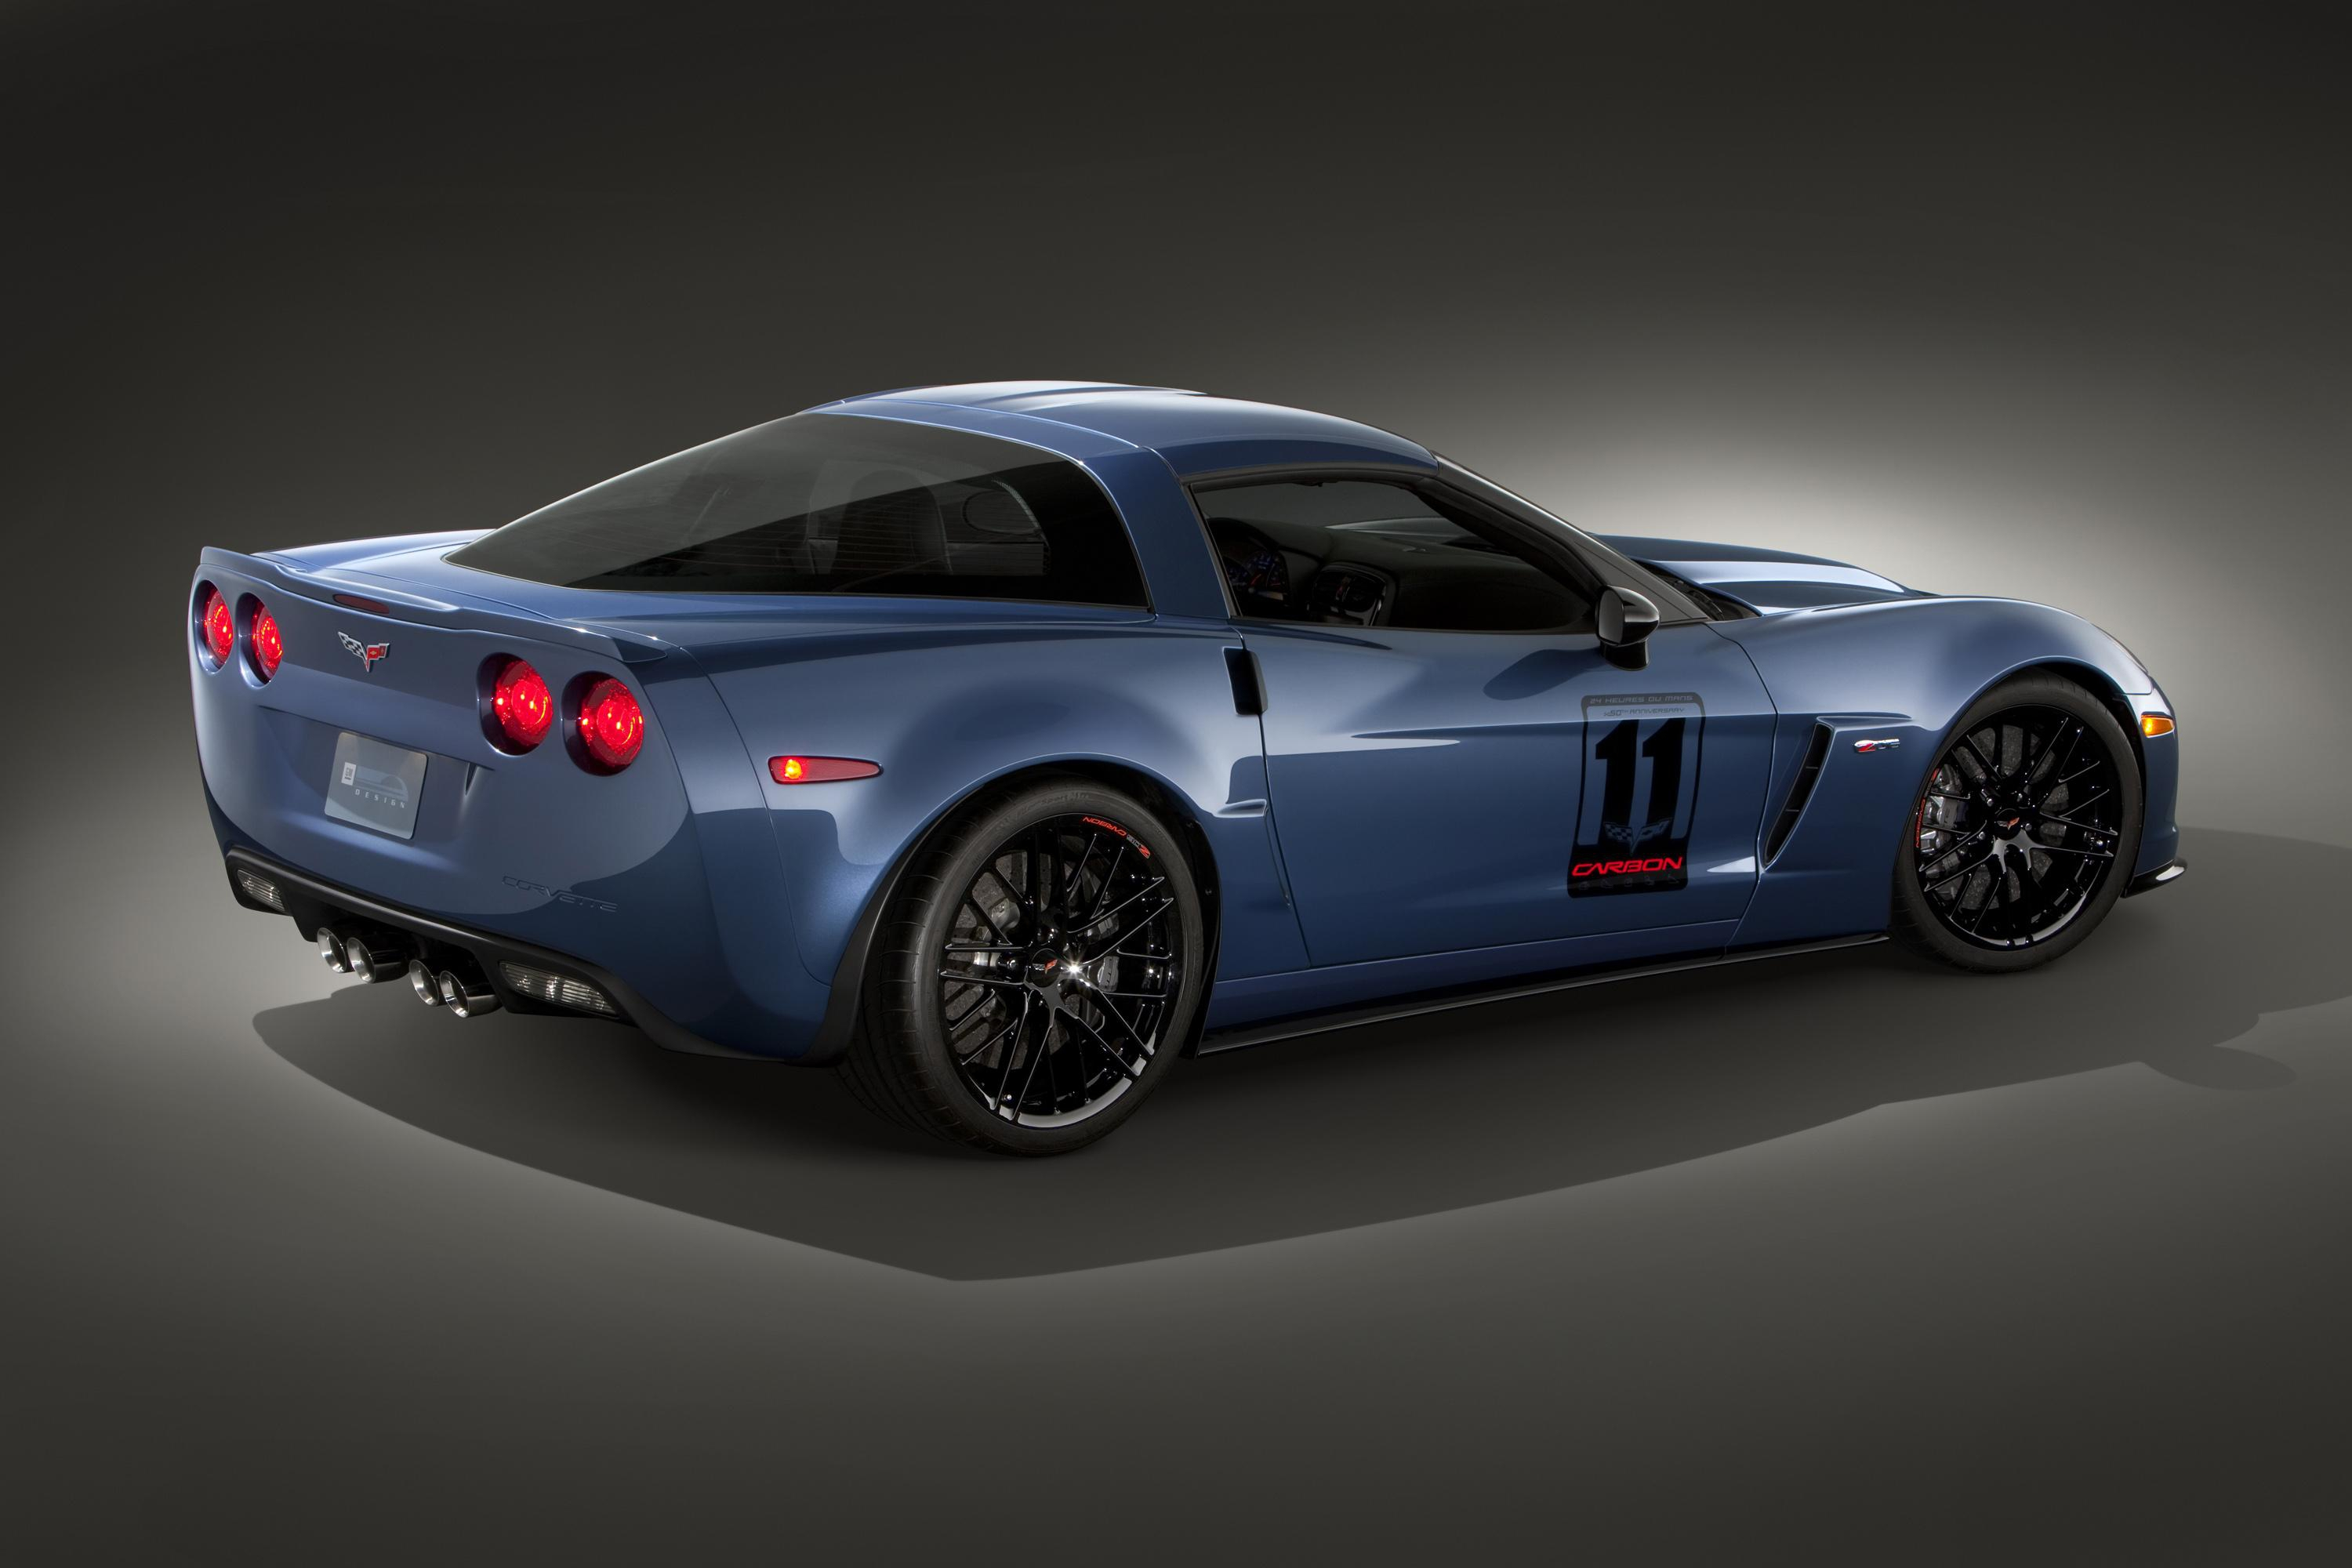 Chevrolet Corvette Zr1 Hd Background